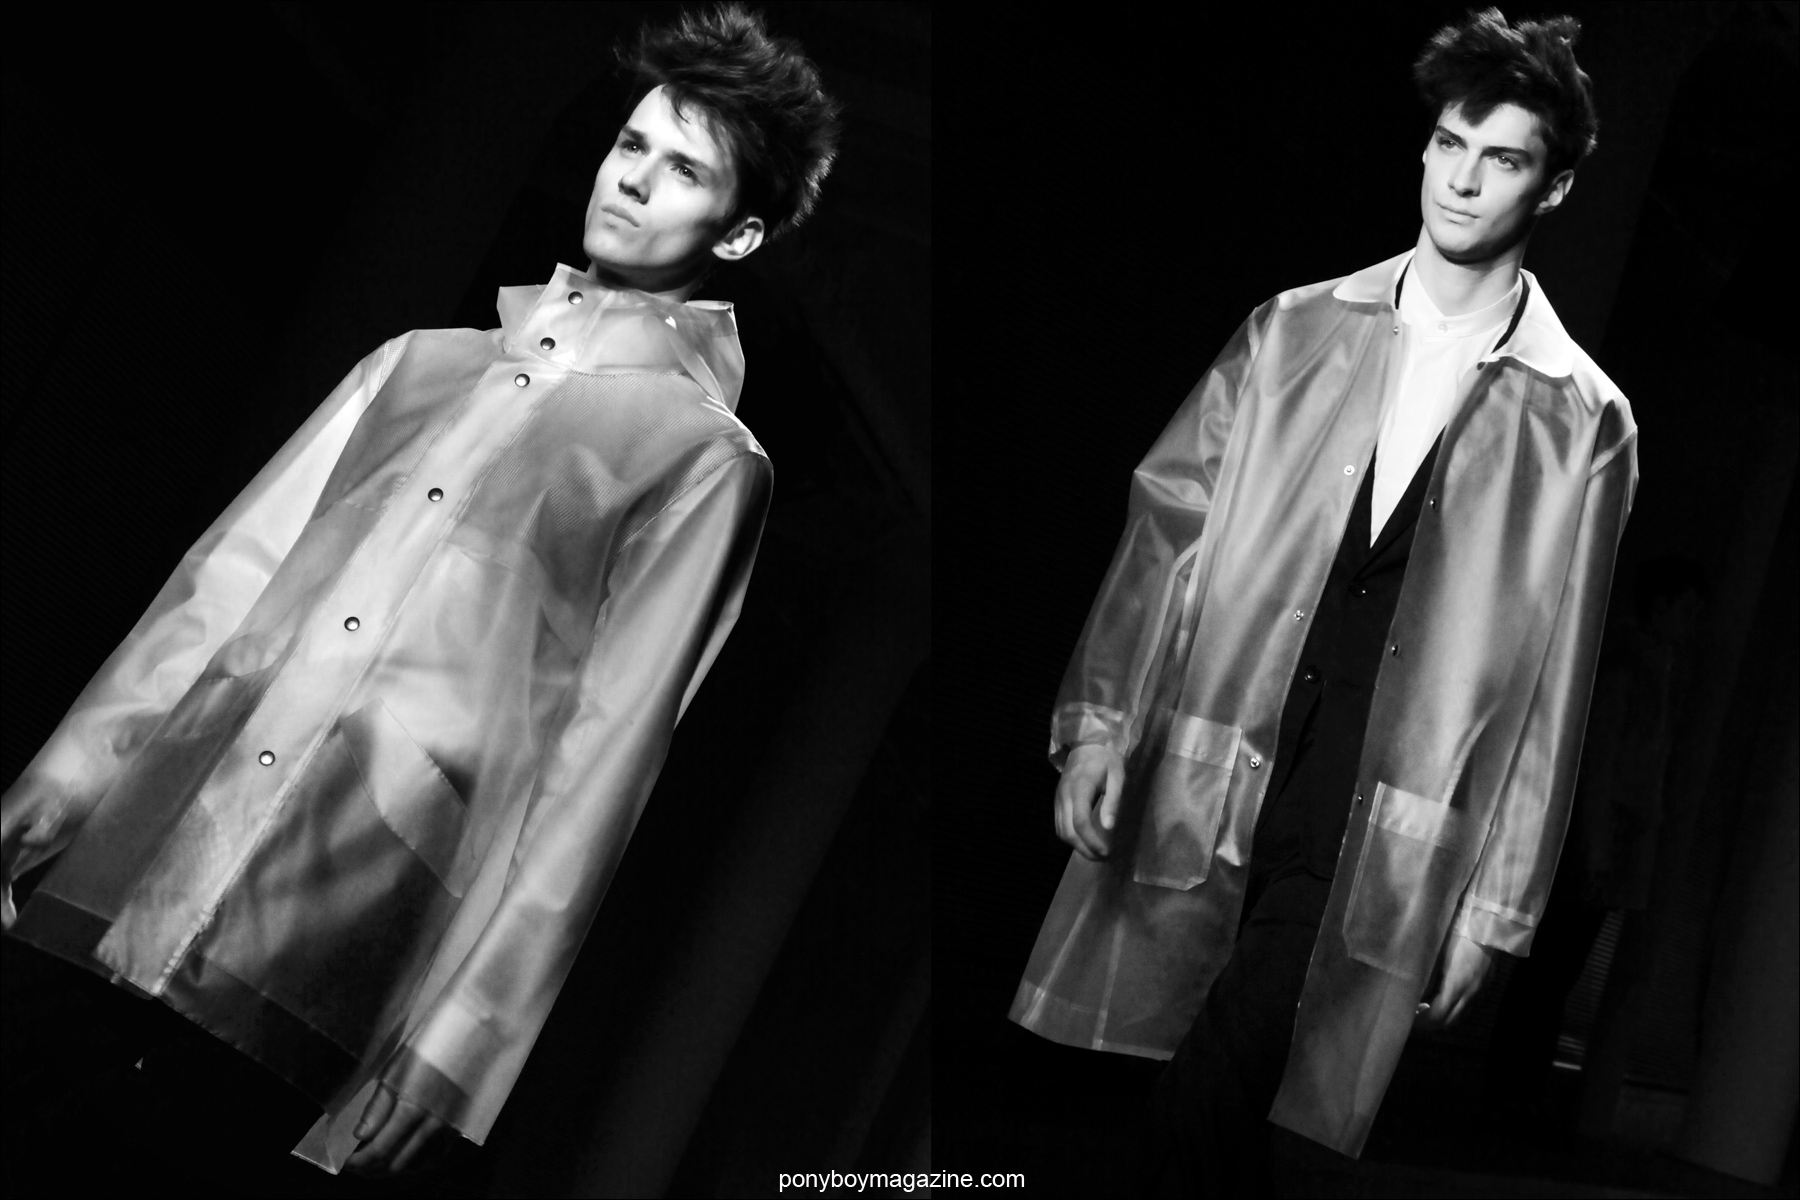 Male models on the runway in frosted raincoats by New York designer Patrik Ervell, Spring/Summer 2015. Photographed at Milk Studios in New York by Alexander Thompson for Ponyboy Magazine.